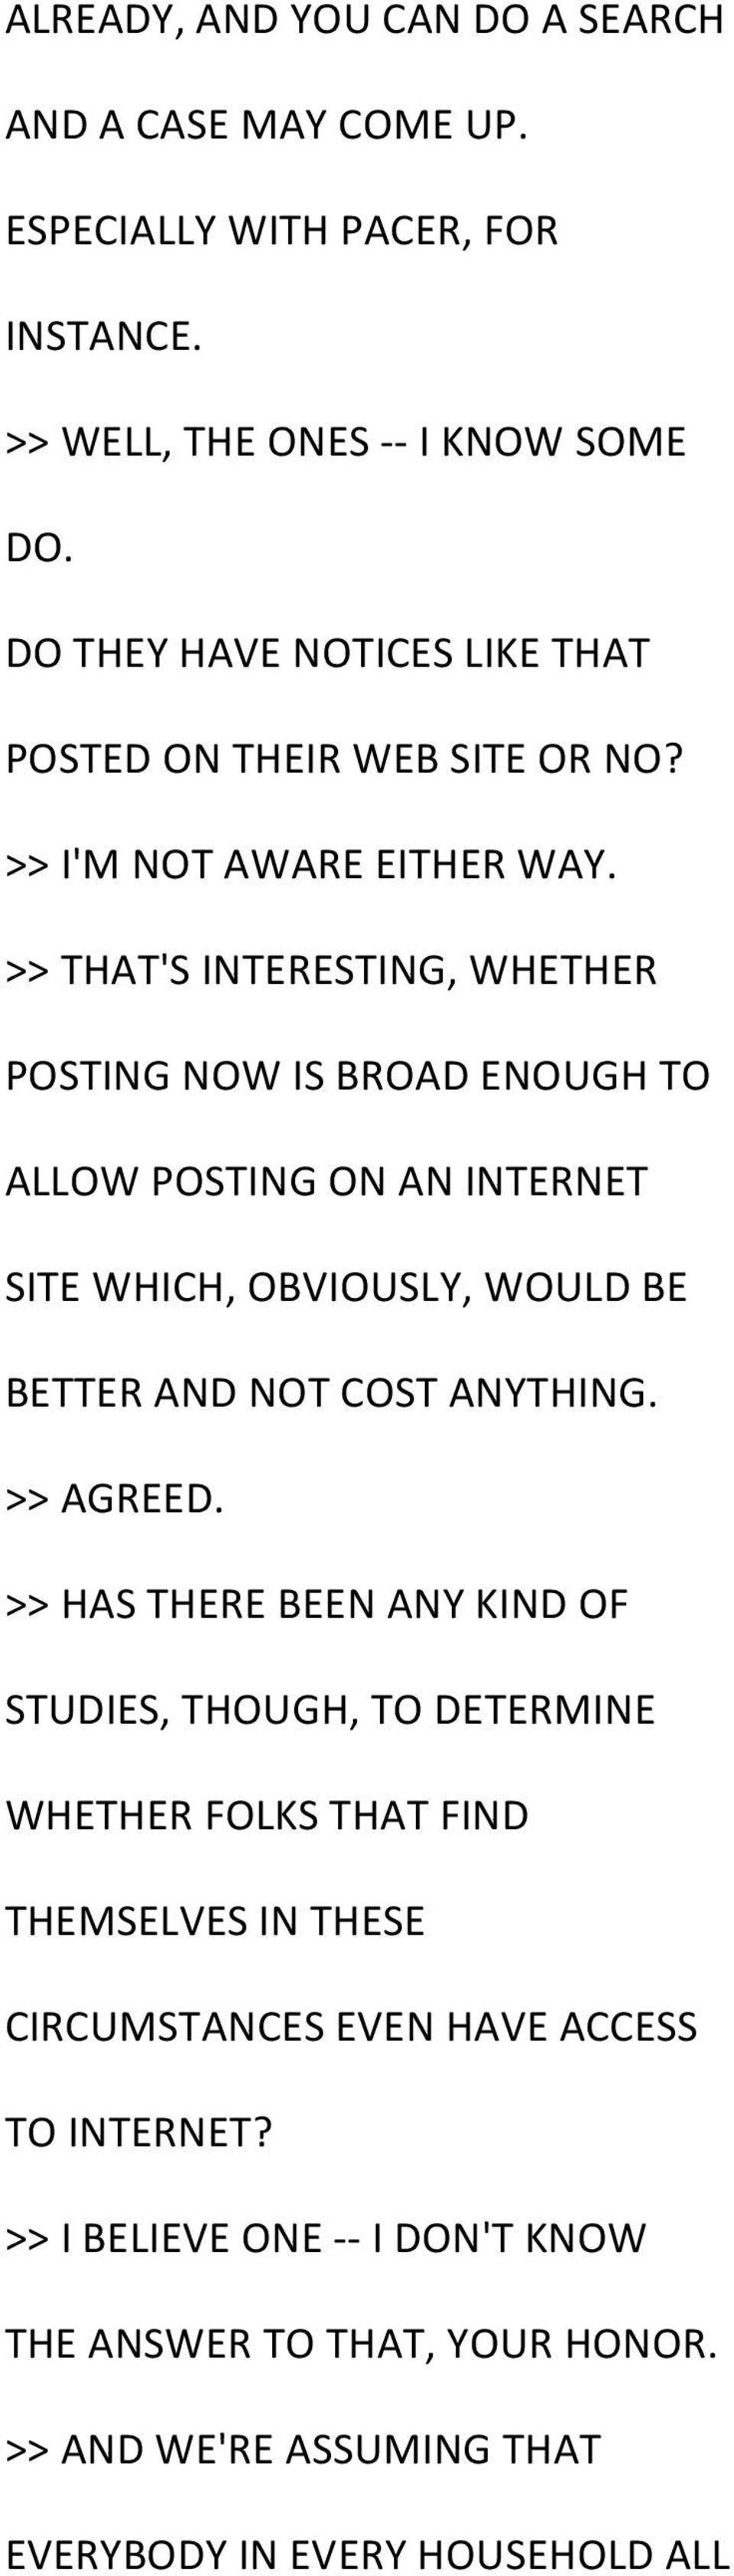 >> THAT'S INTERESTING, WHETHER POSTING NOW IS BROAD ENOUGH TO ALLOW POSTING ON AN INTERNET SITE WHICH, OBVIOUSLY, WOULD BE BETTER AND NOT COST ANYTHING. >> AGREED.